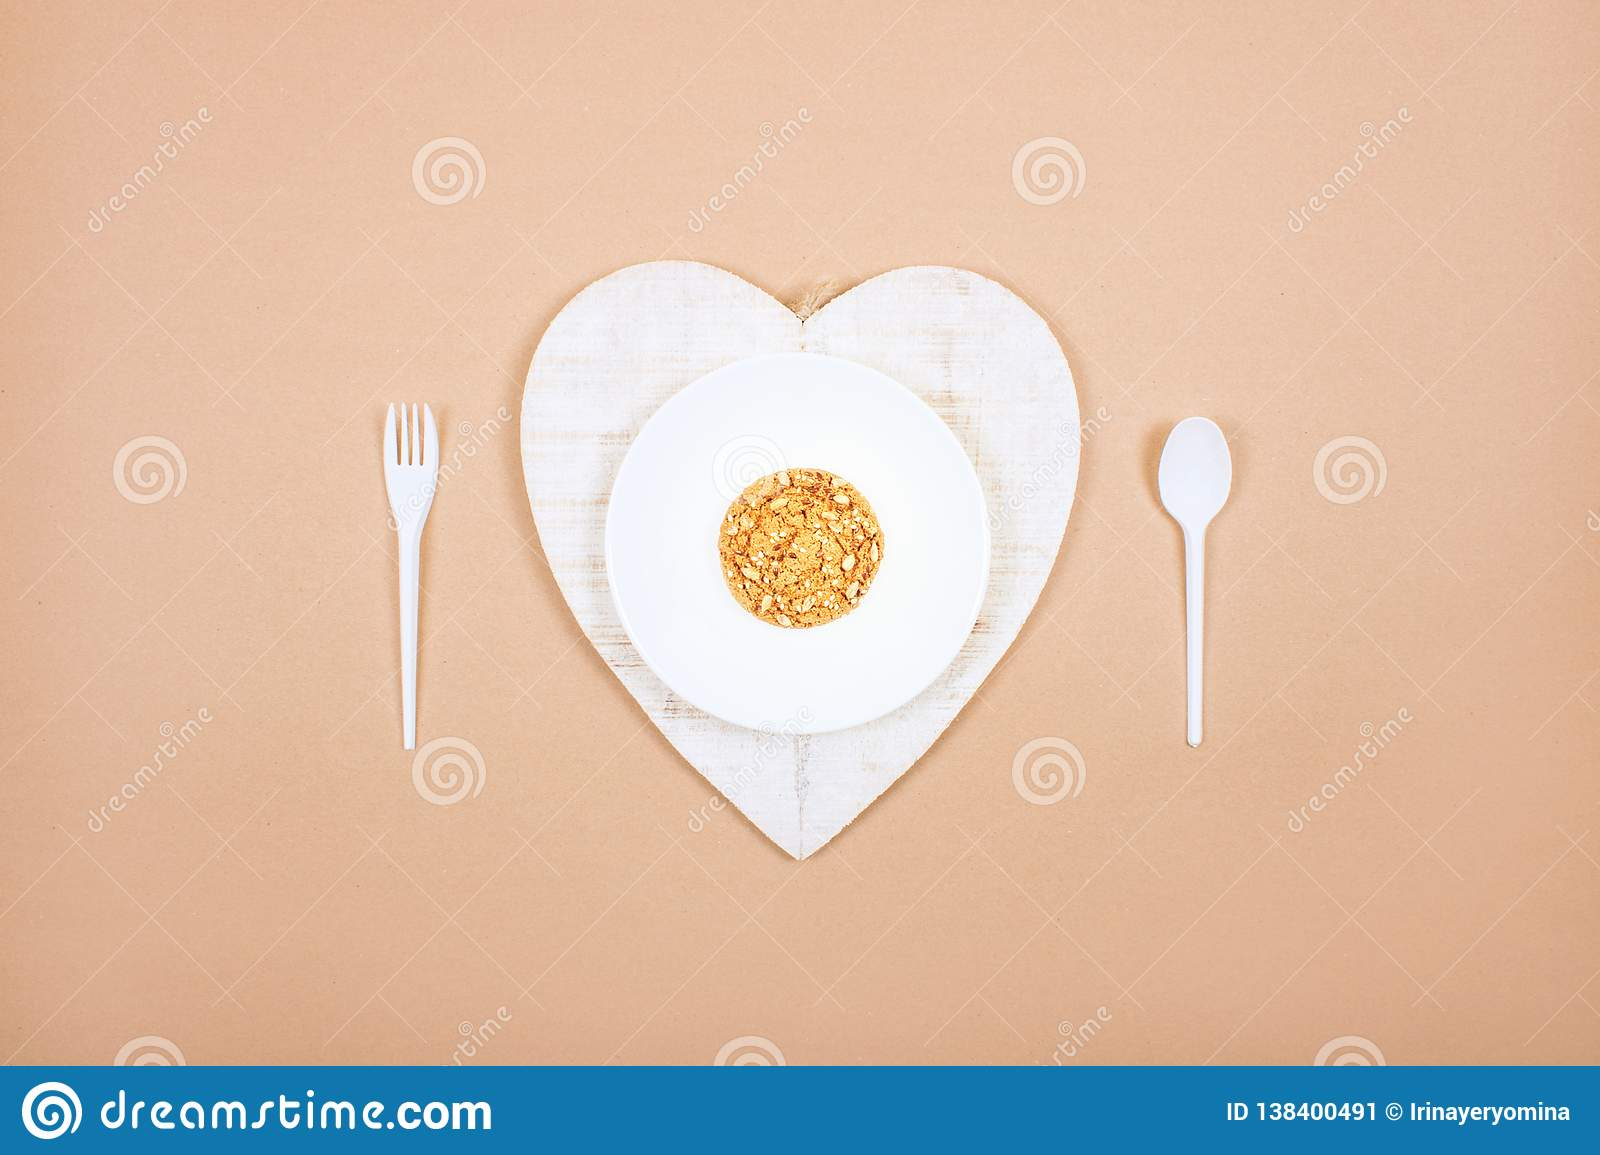 White Plate With Spoon, Fork And Whole Grain Cookies Oatmeal